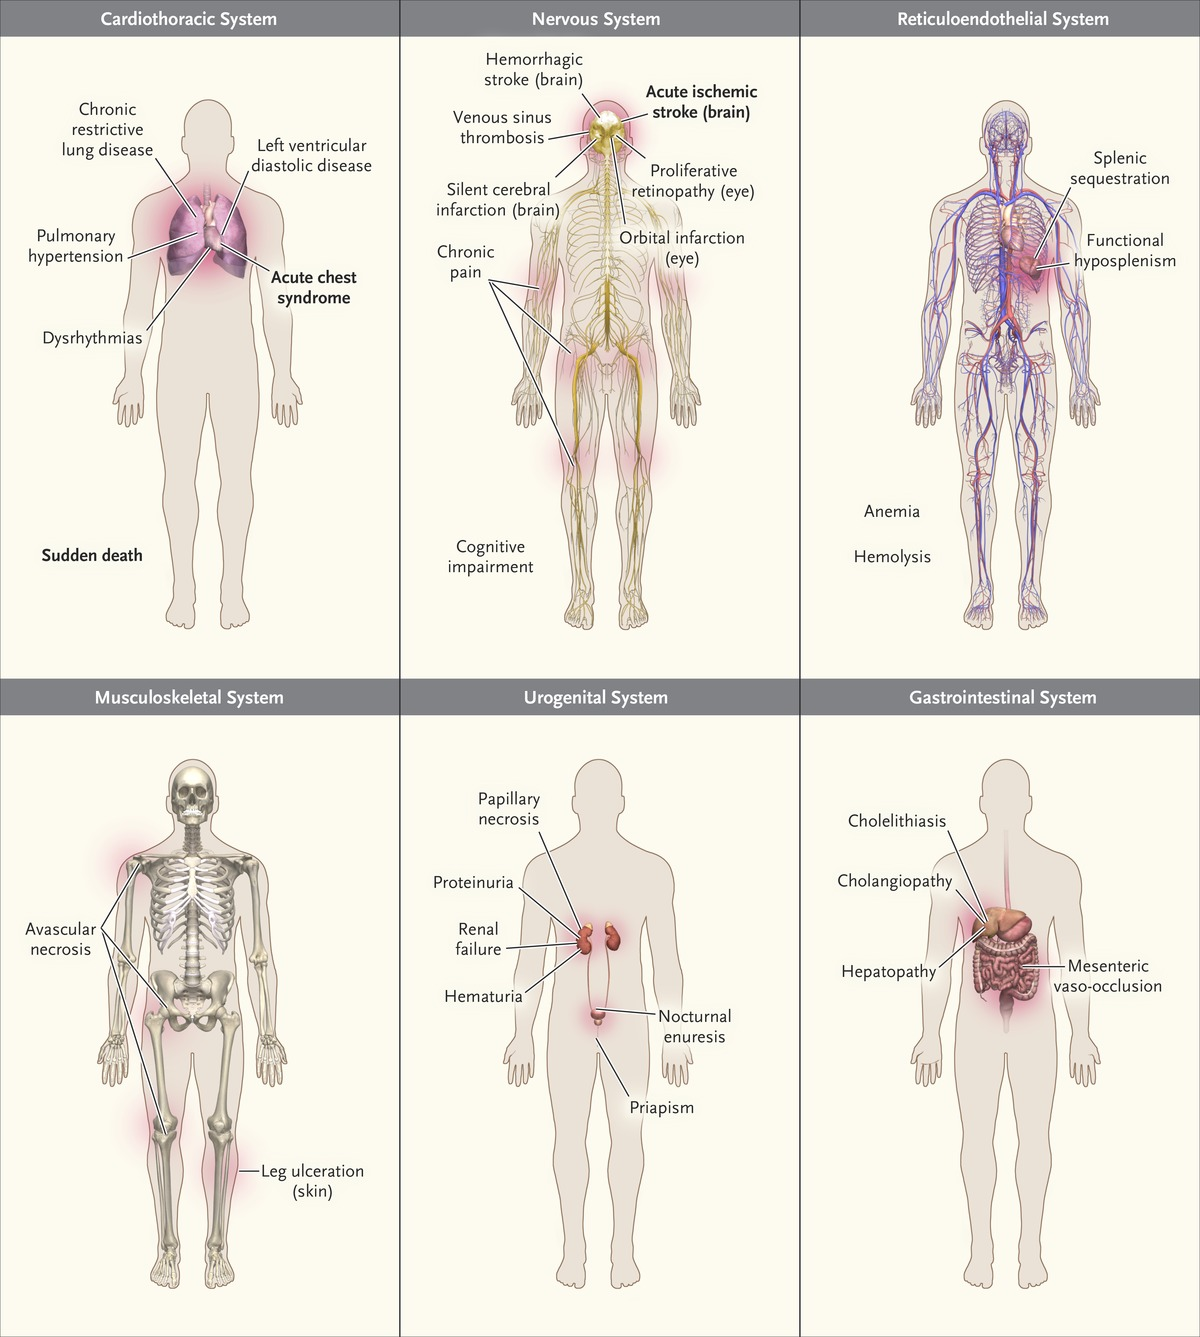 Sickle Cell Disease | NEJM